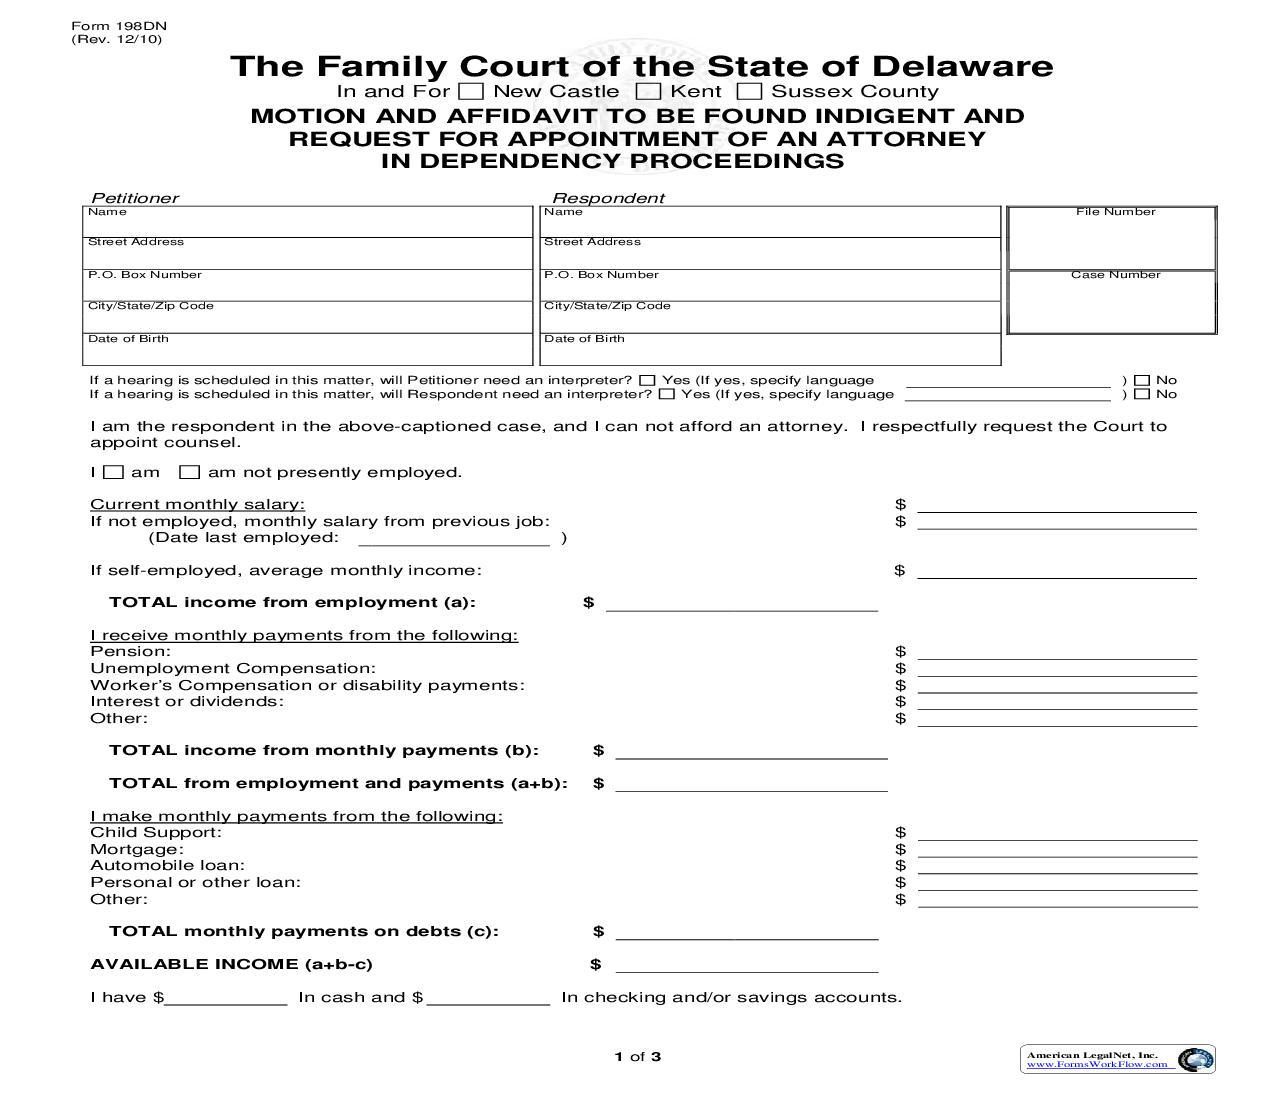 Motion And Affidavit To Be Found Indigent And Request For Appointment Of Attorney In Dependency Proceedings {198DN} | Pdf Fpdf Doc Docx | Delaware